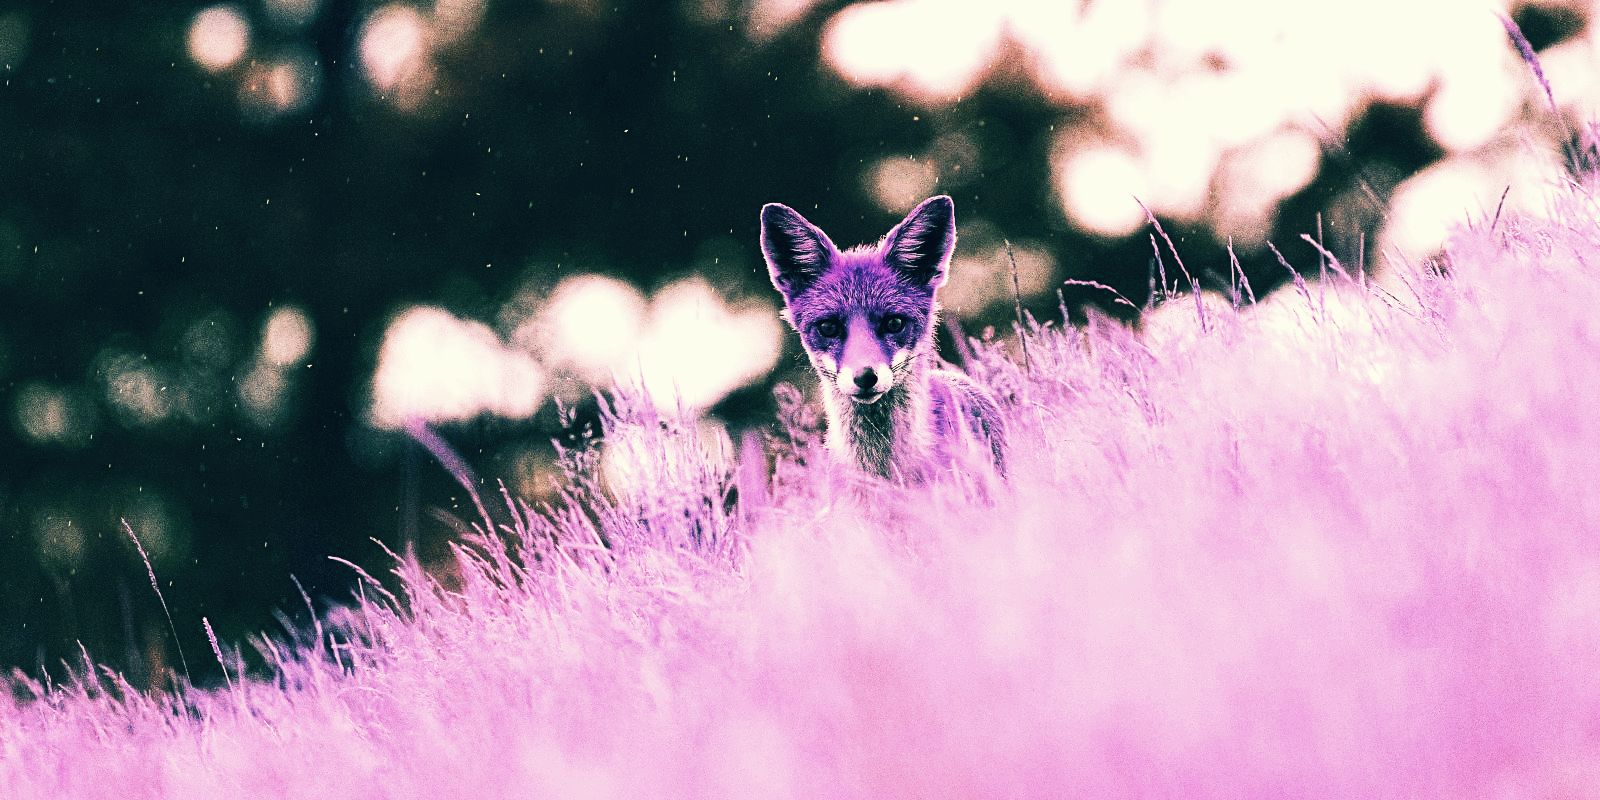 Purple Fox malware worms its way into exposed Windows systems